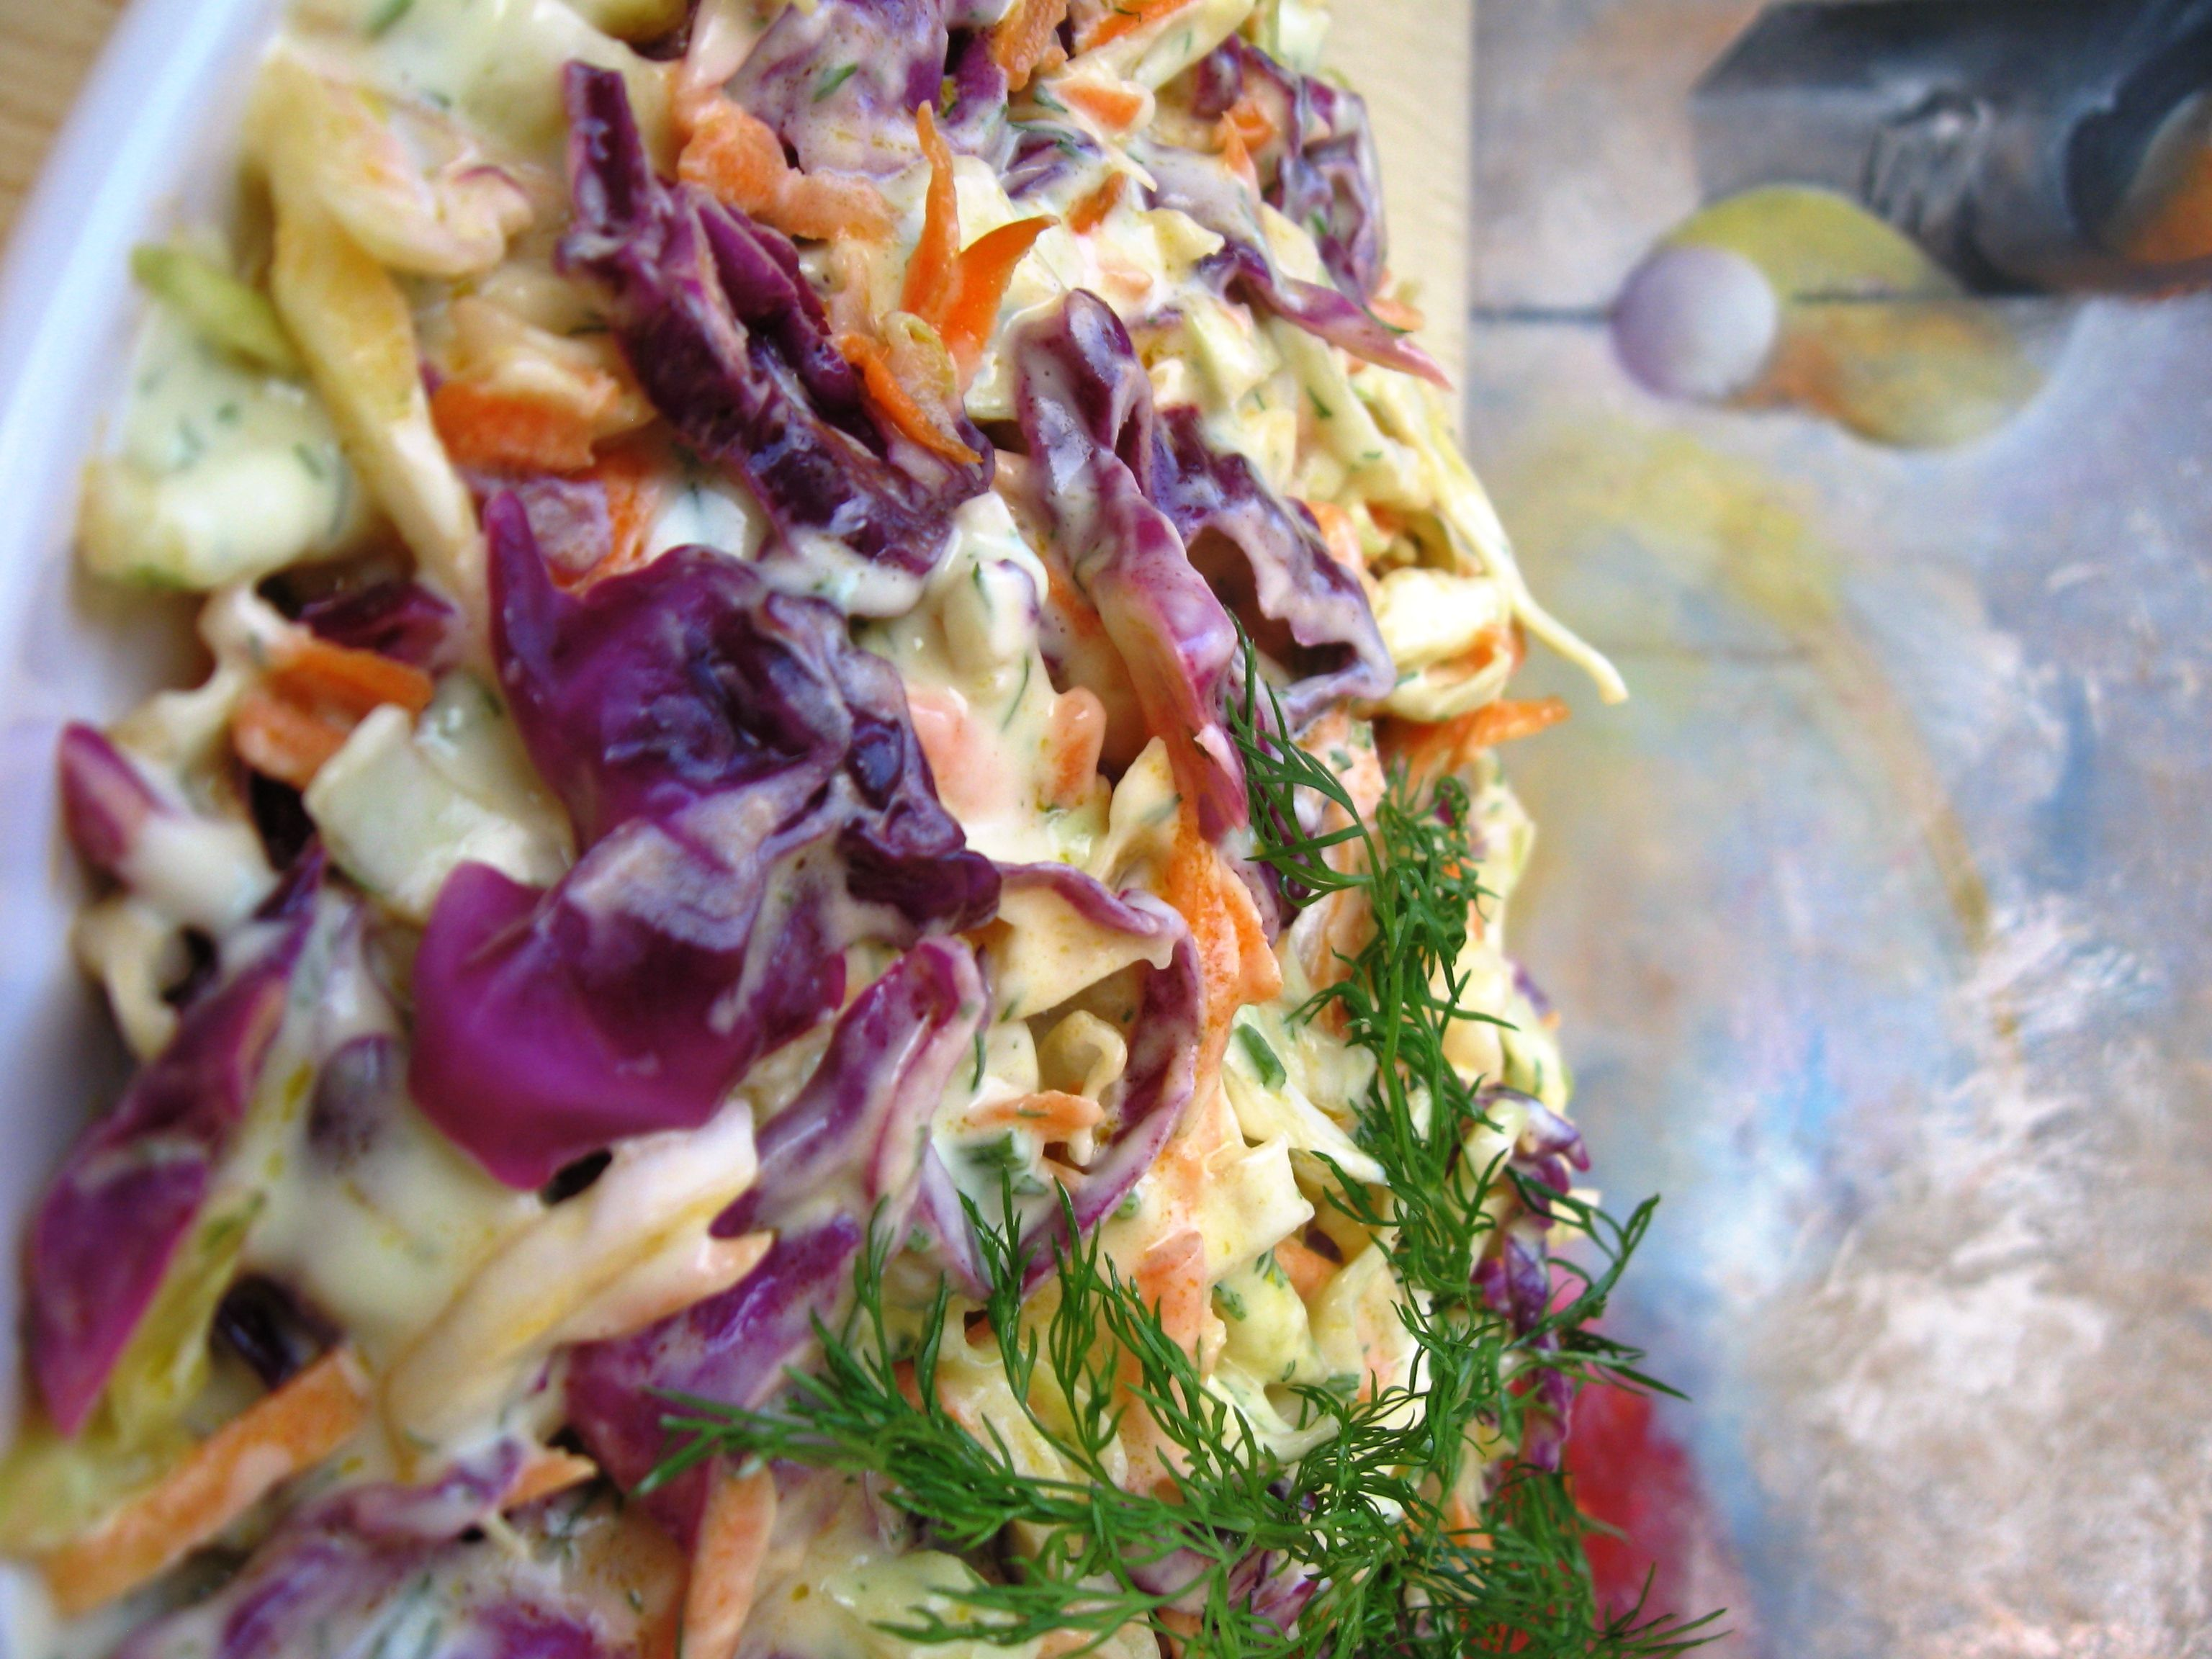 Delicious cabbage salad with incredible delicious celery dressing. #greatfood #healthyfood